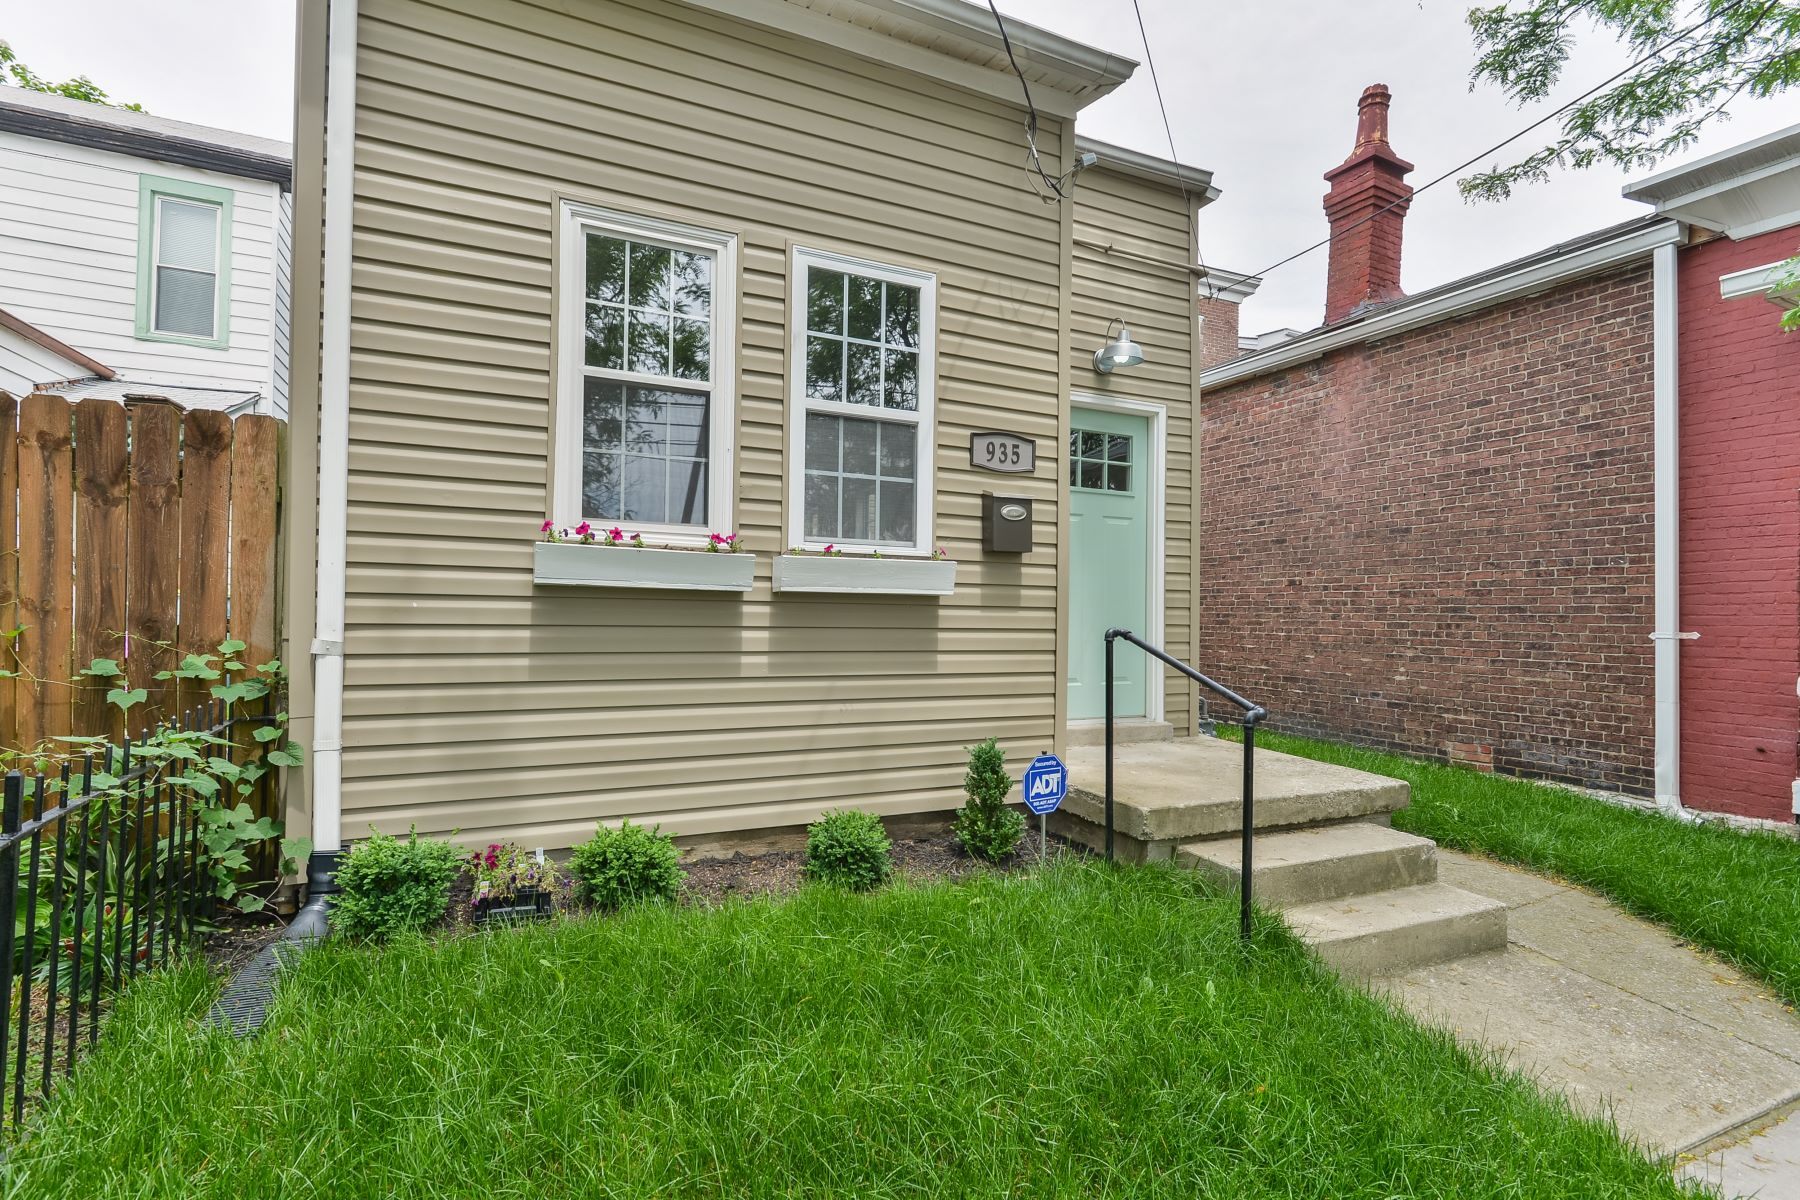 Additional photo for property listing at 935 E Liberty Street  Louisville, Kentucky 40204 United States